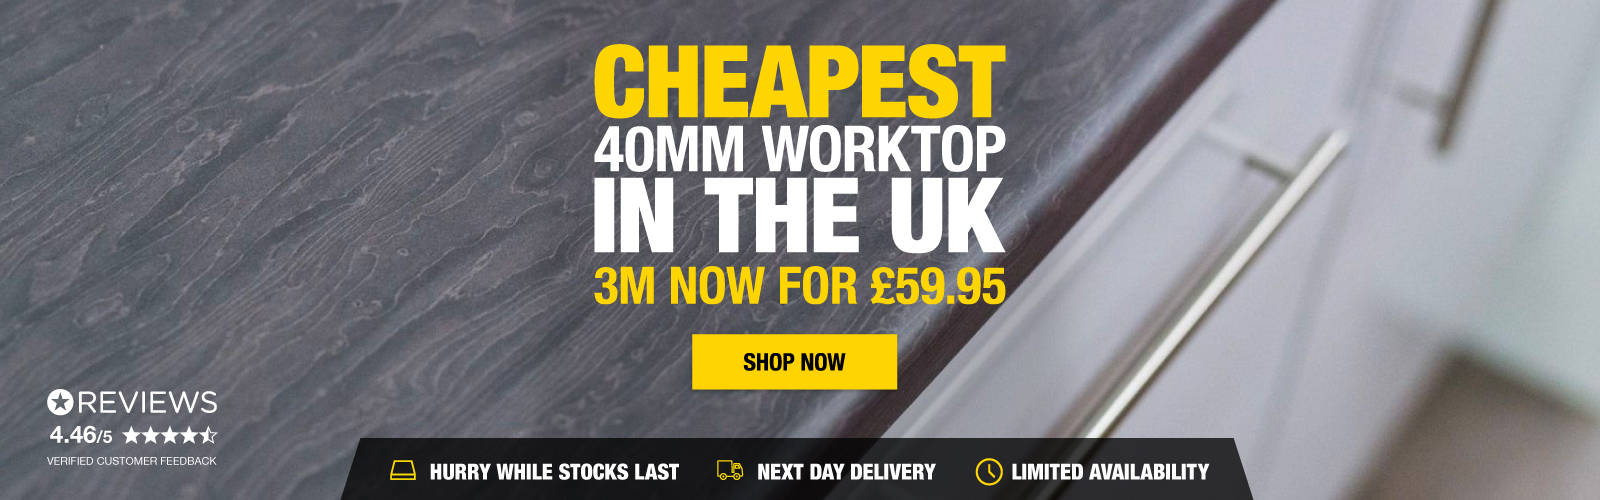 Cheapest 40MM Worktop In The UK